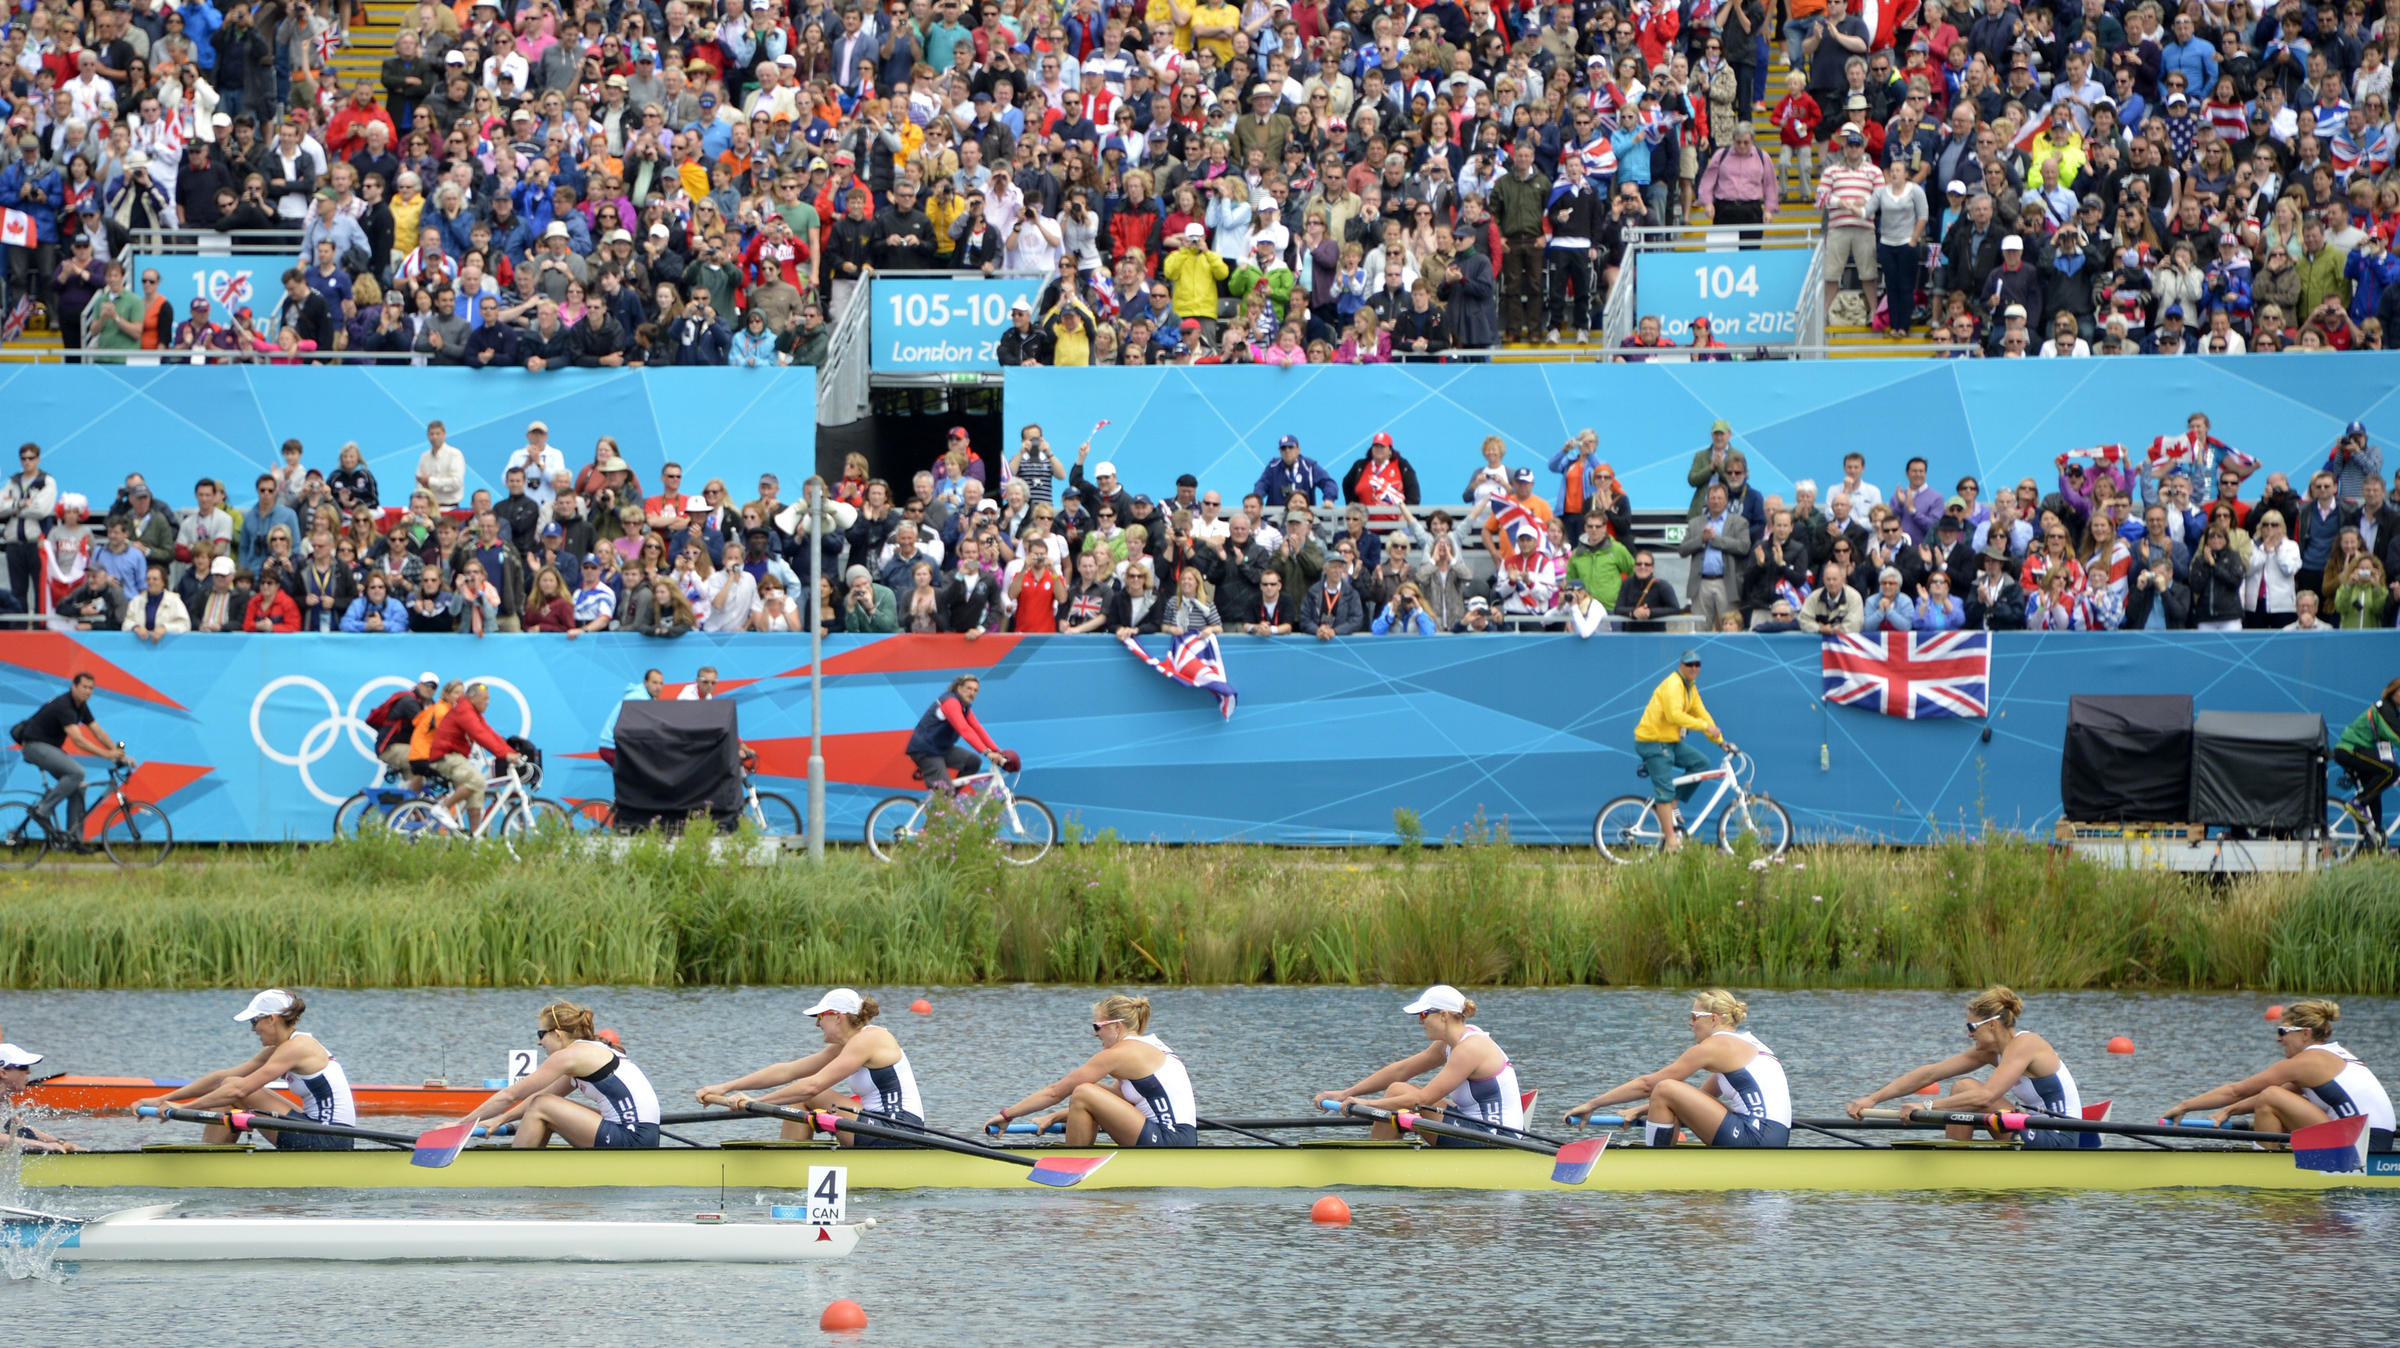 dissertation london olympics Mega-events, such as the olympic games, are widely held to bring a variety of table 51 social statistics for london olympic boroughs.